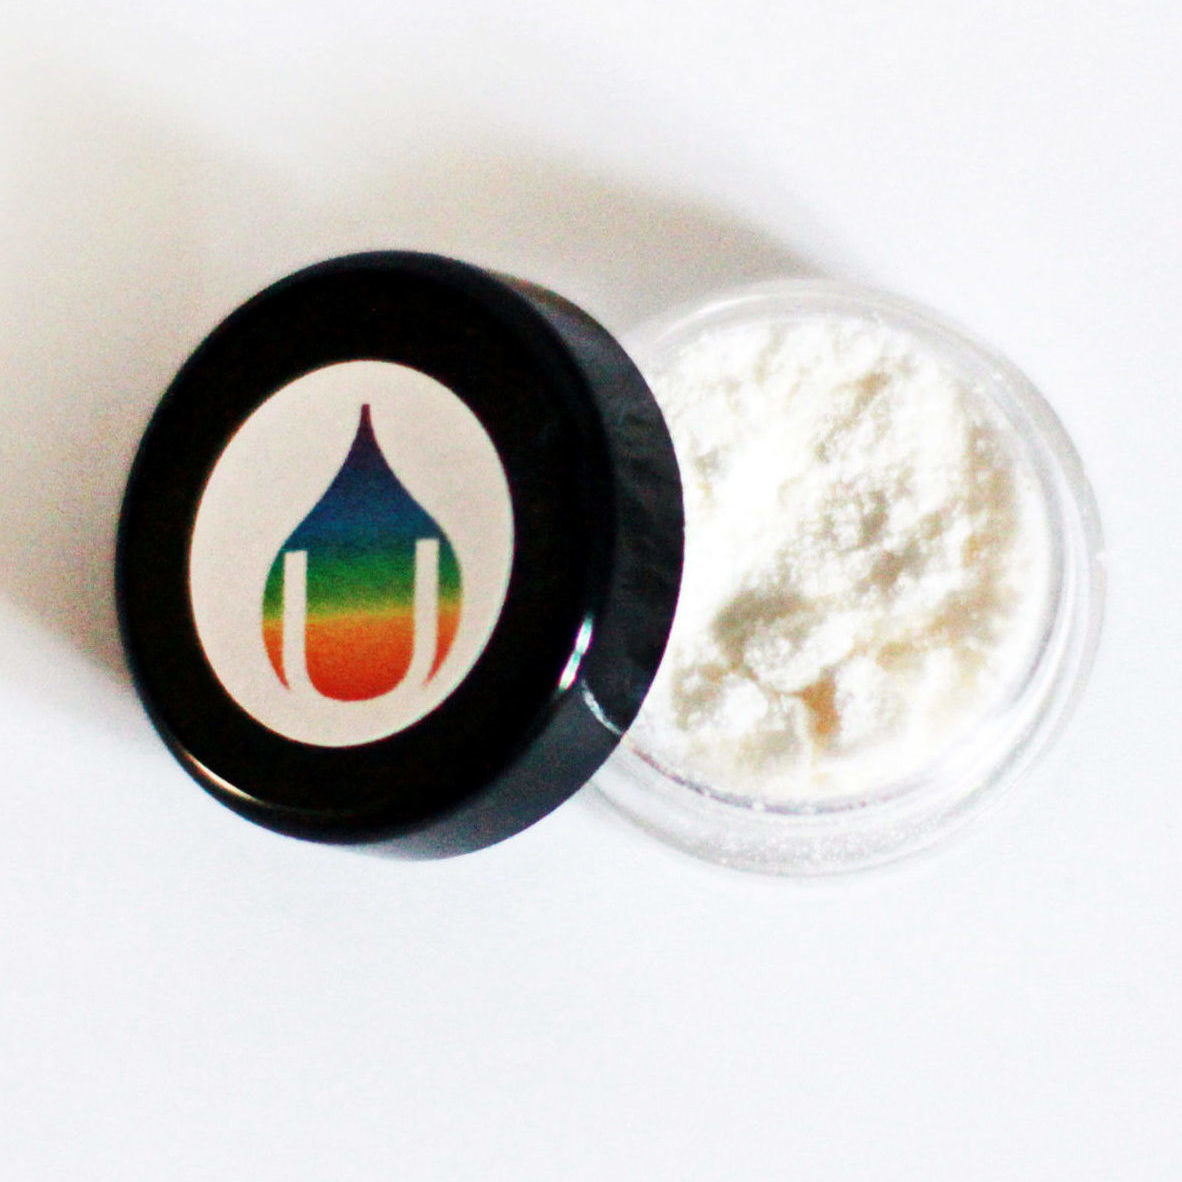 Pure Spectrum 99% CBD Isolate